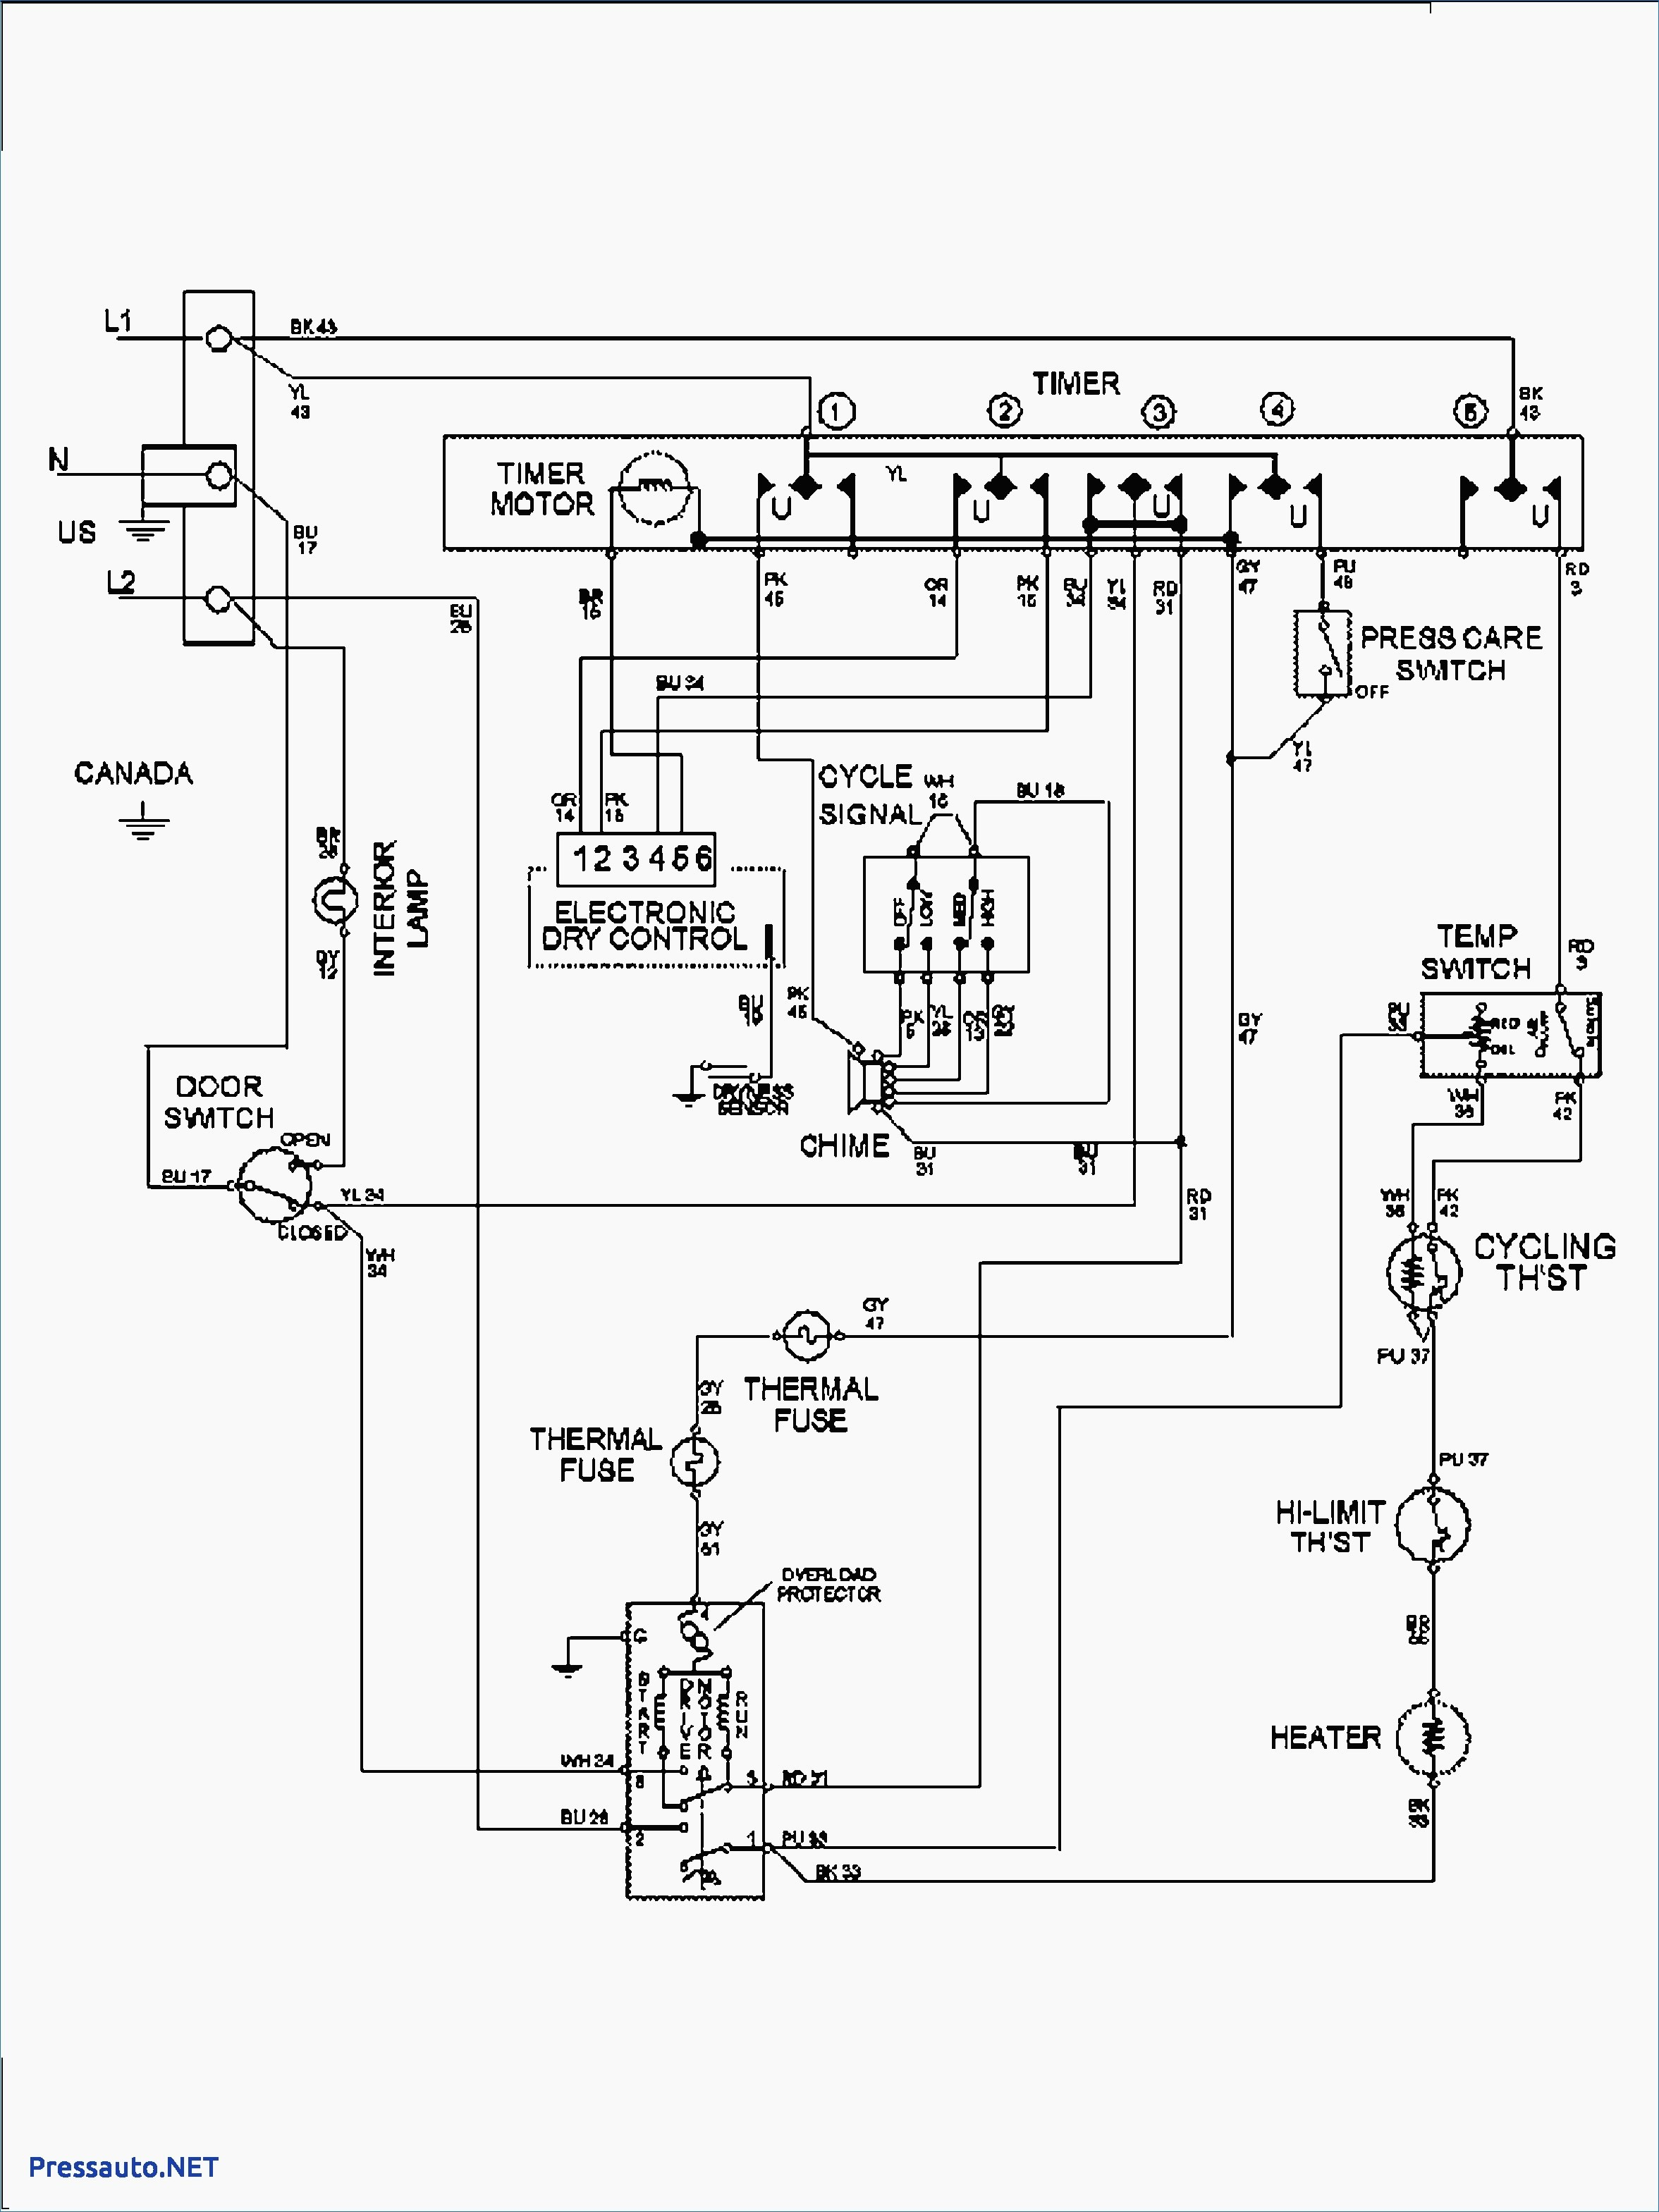 4 Wire Dryer Cord Installation Diagram